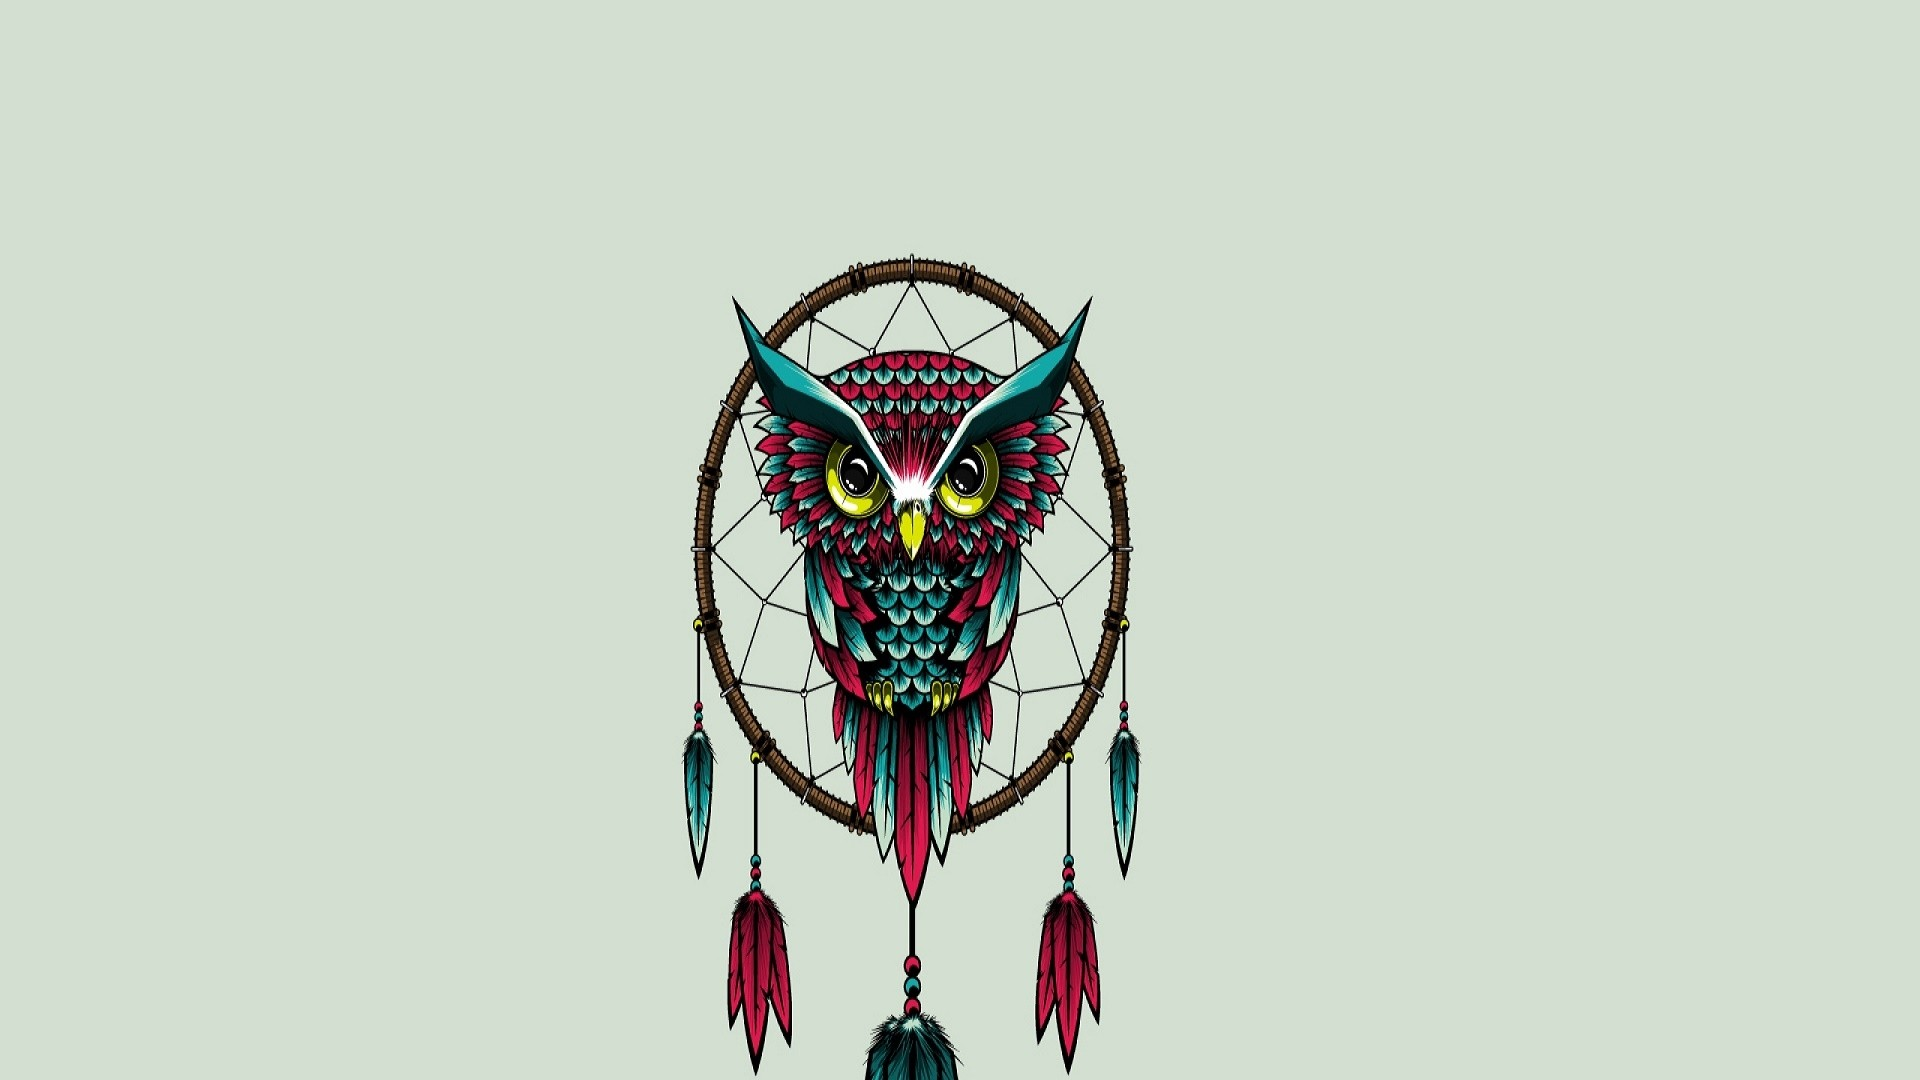 Dreamcatcher Wallpaper theme